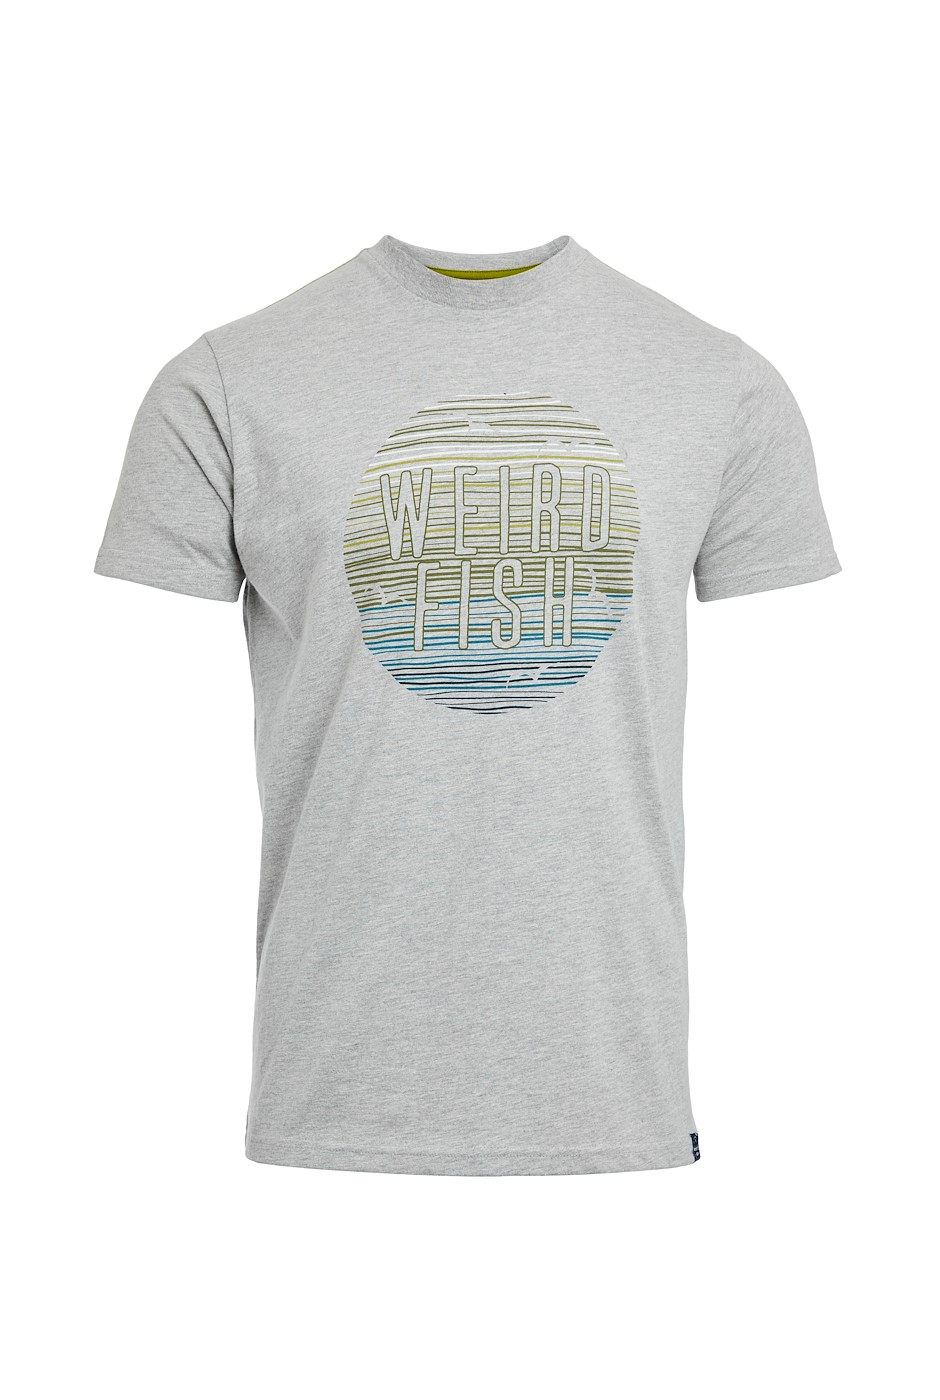 Sunset Branded Graphic T-Shirt Grey